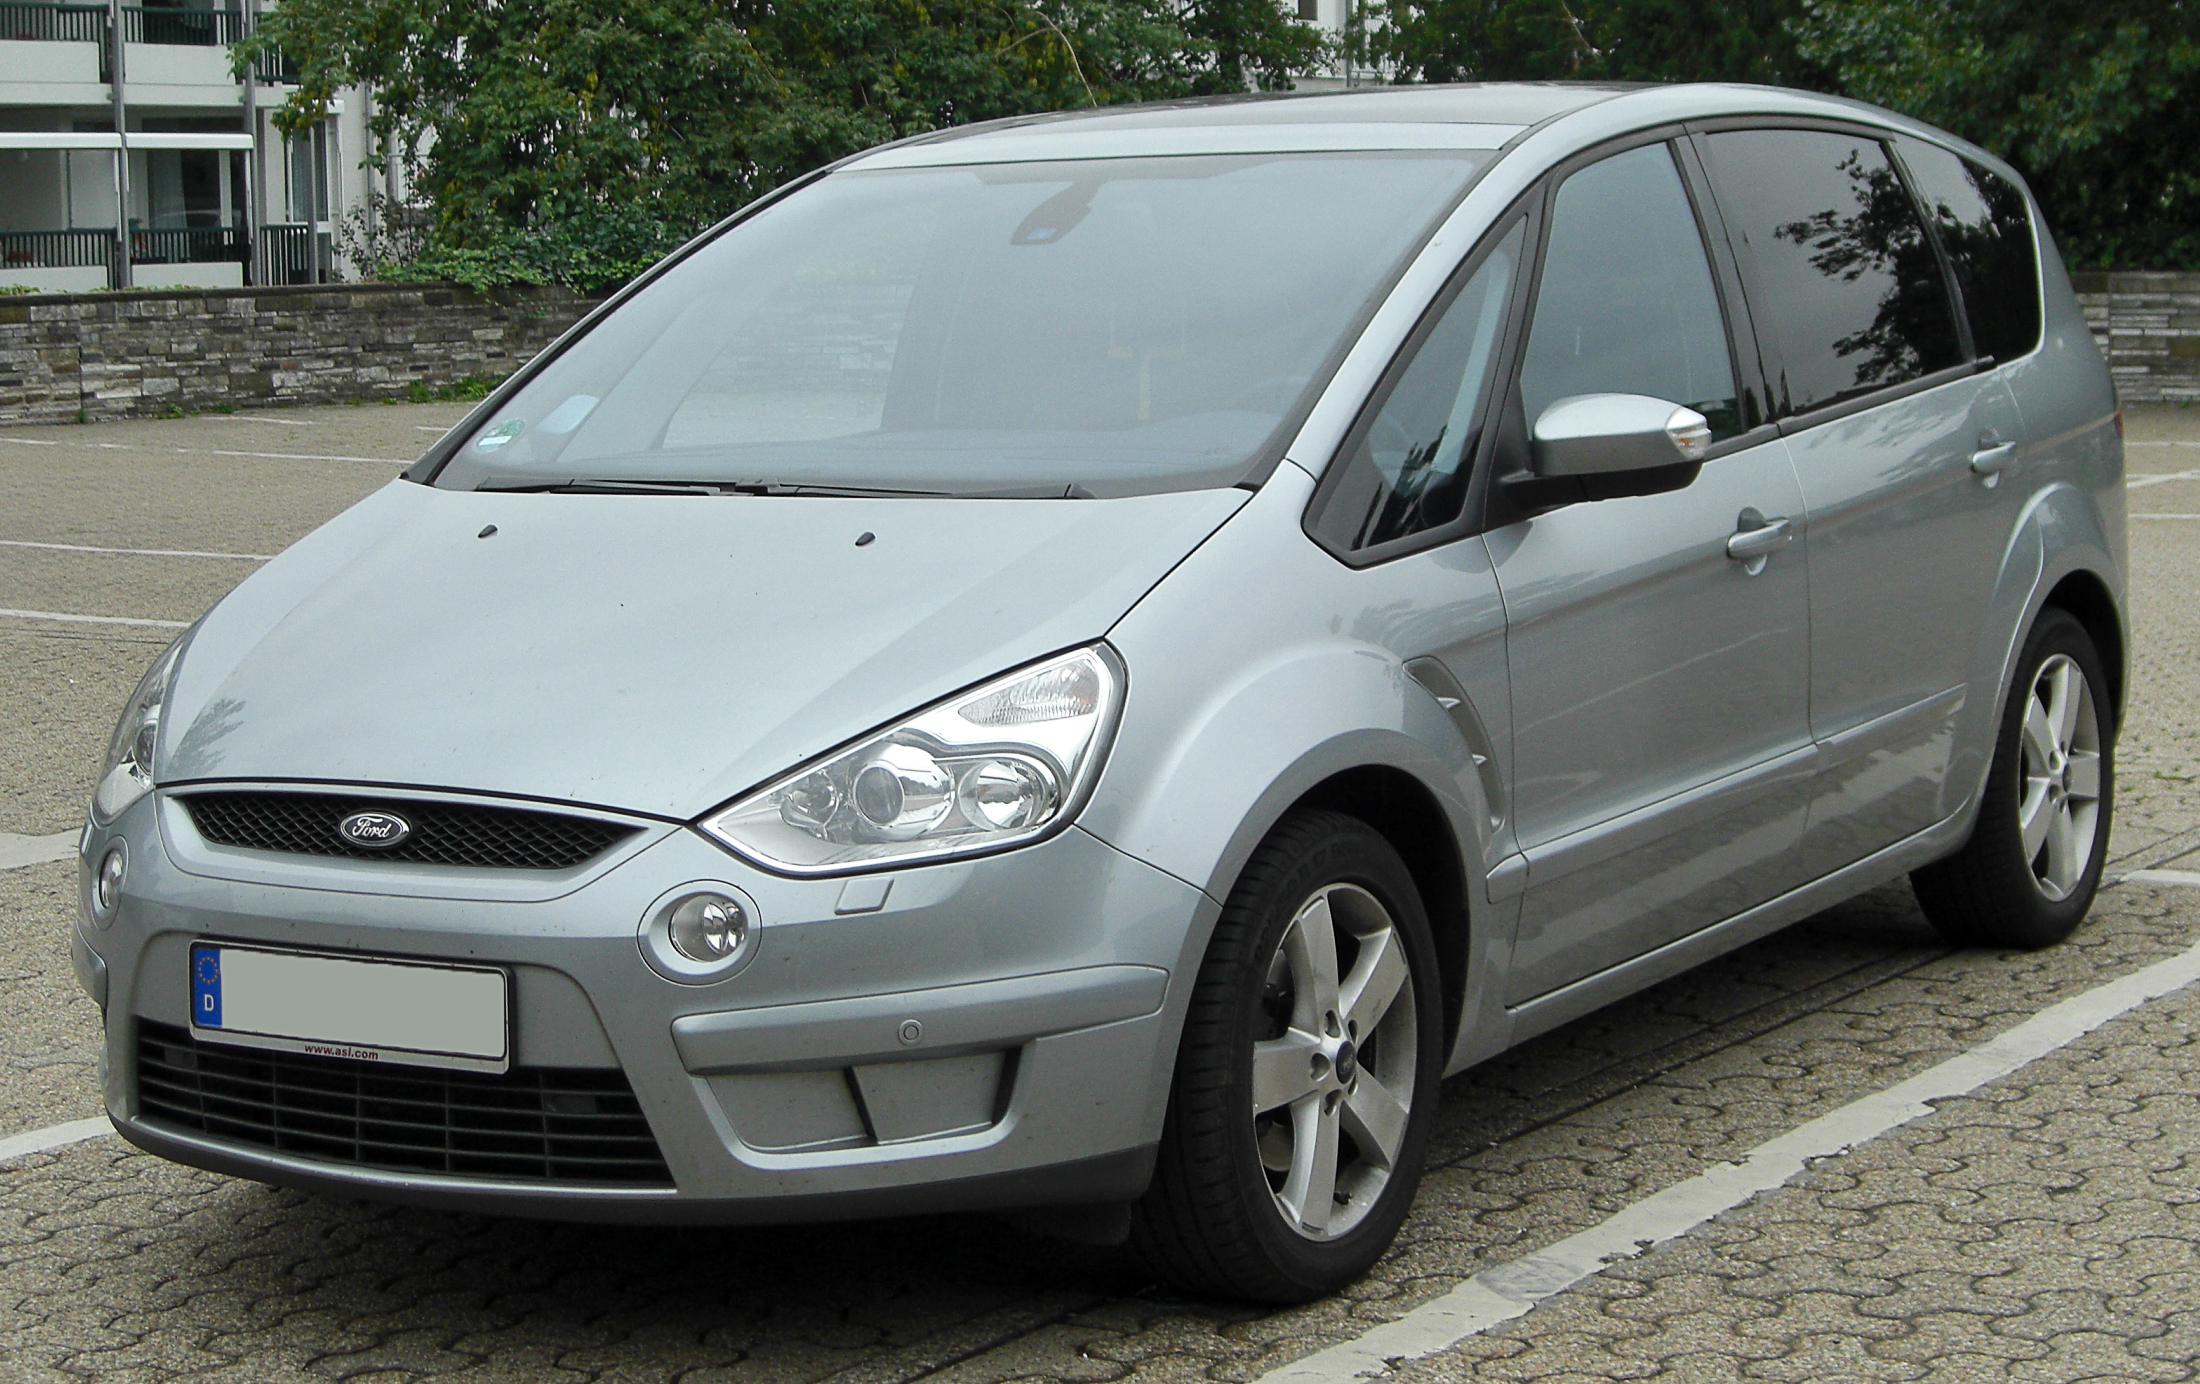 ford s-max images #1